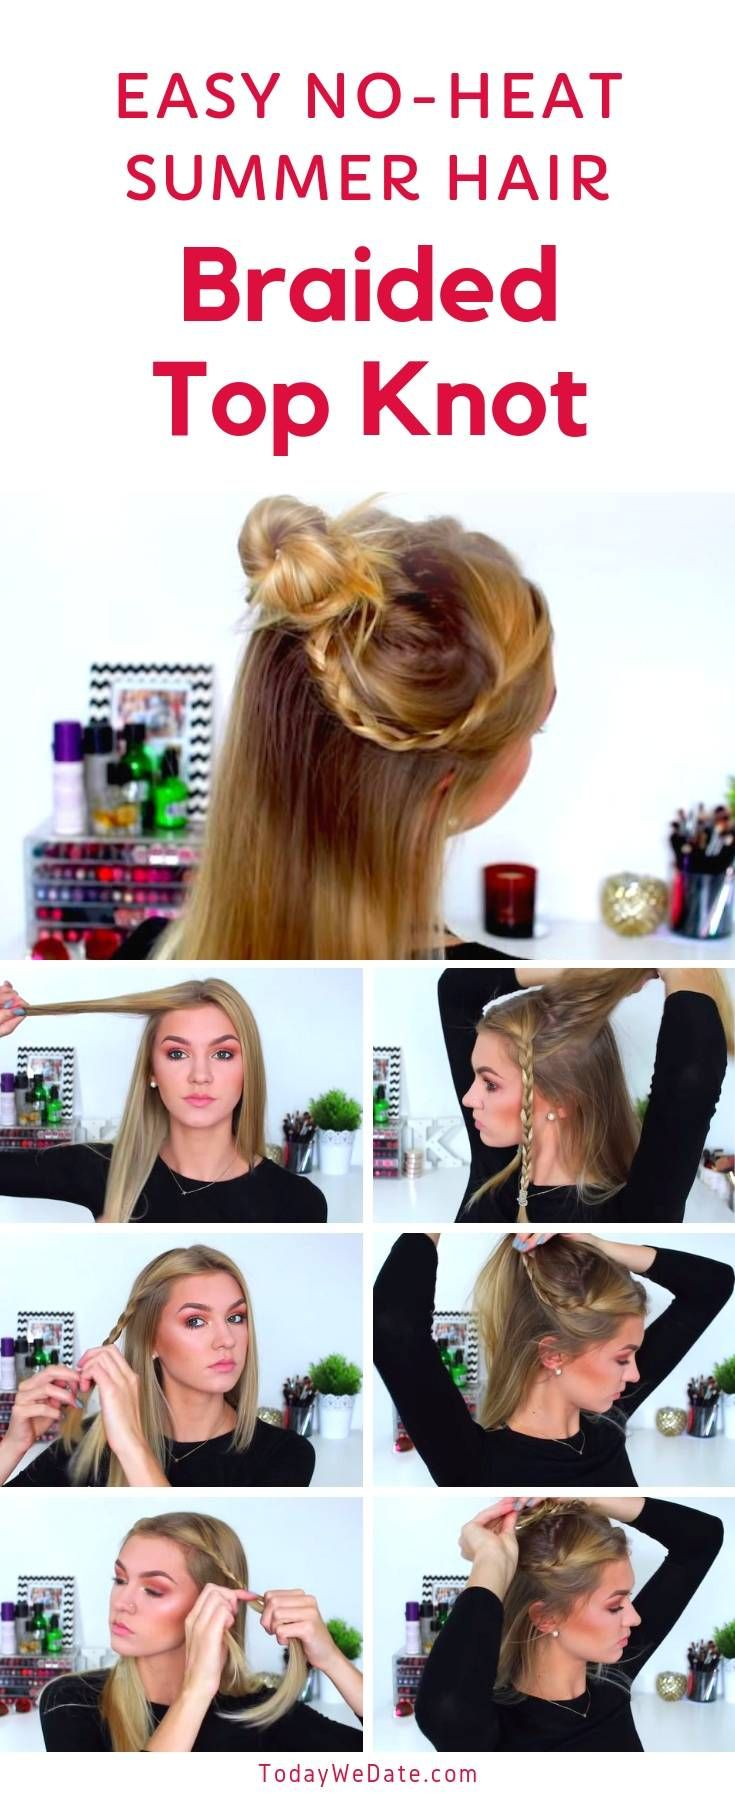 7 no-heat easy summer hairstyles anyone can pull off in 5